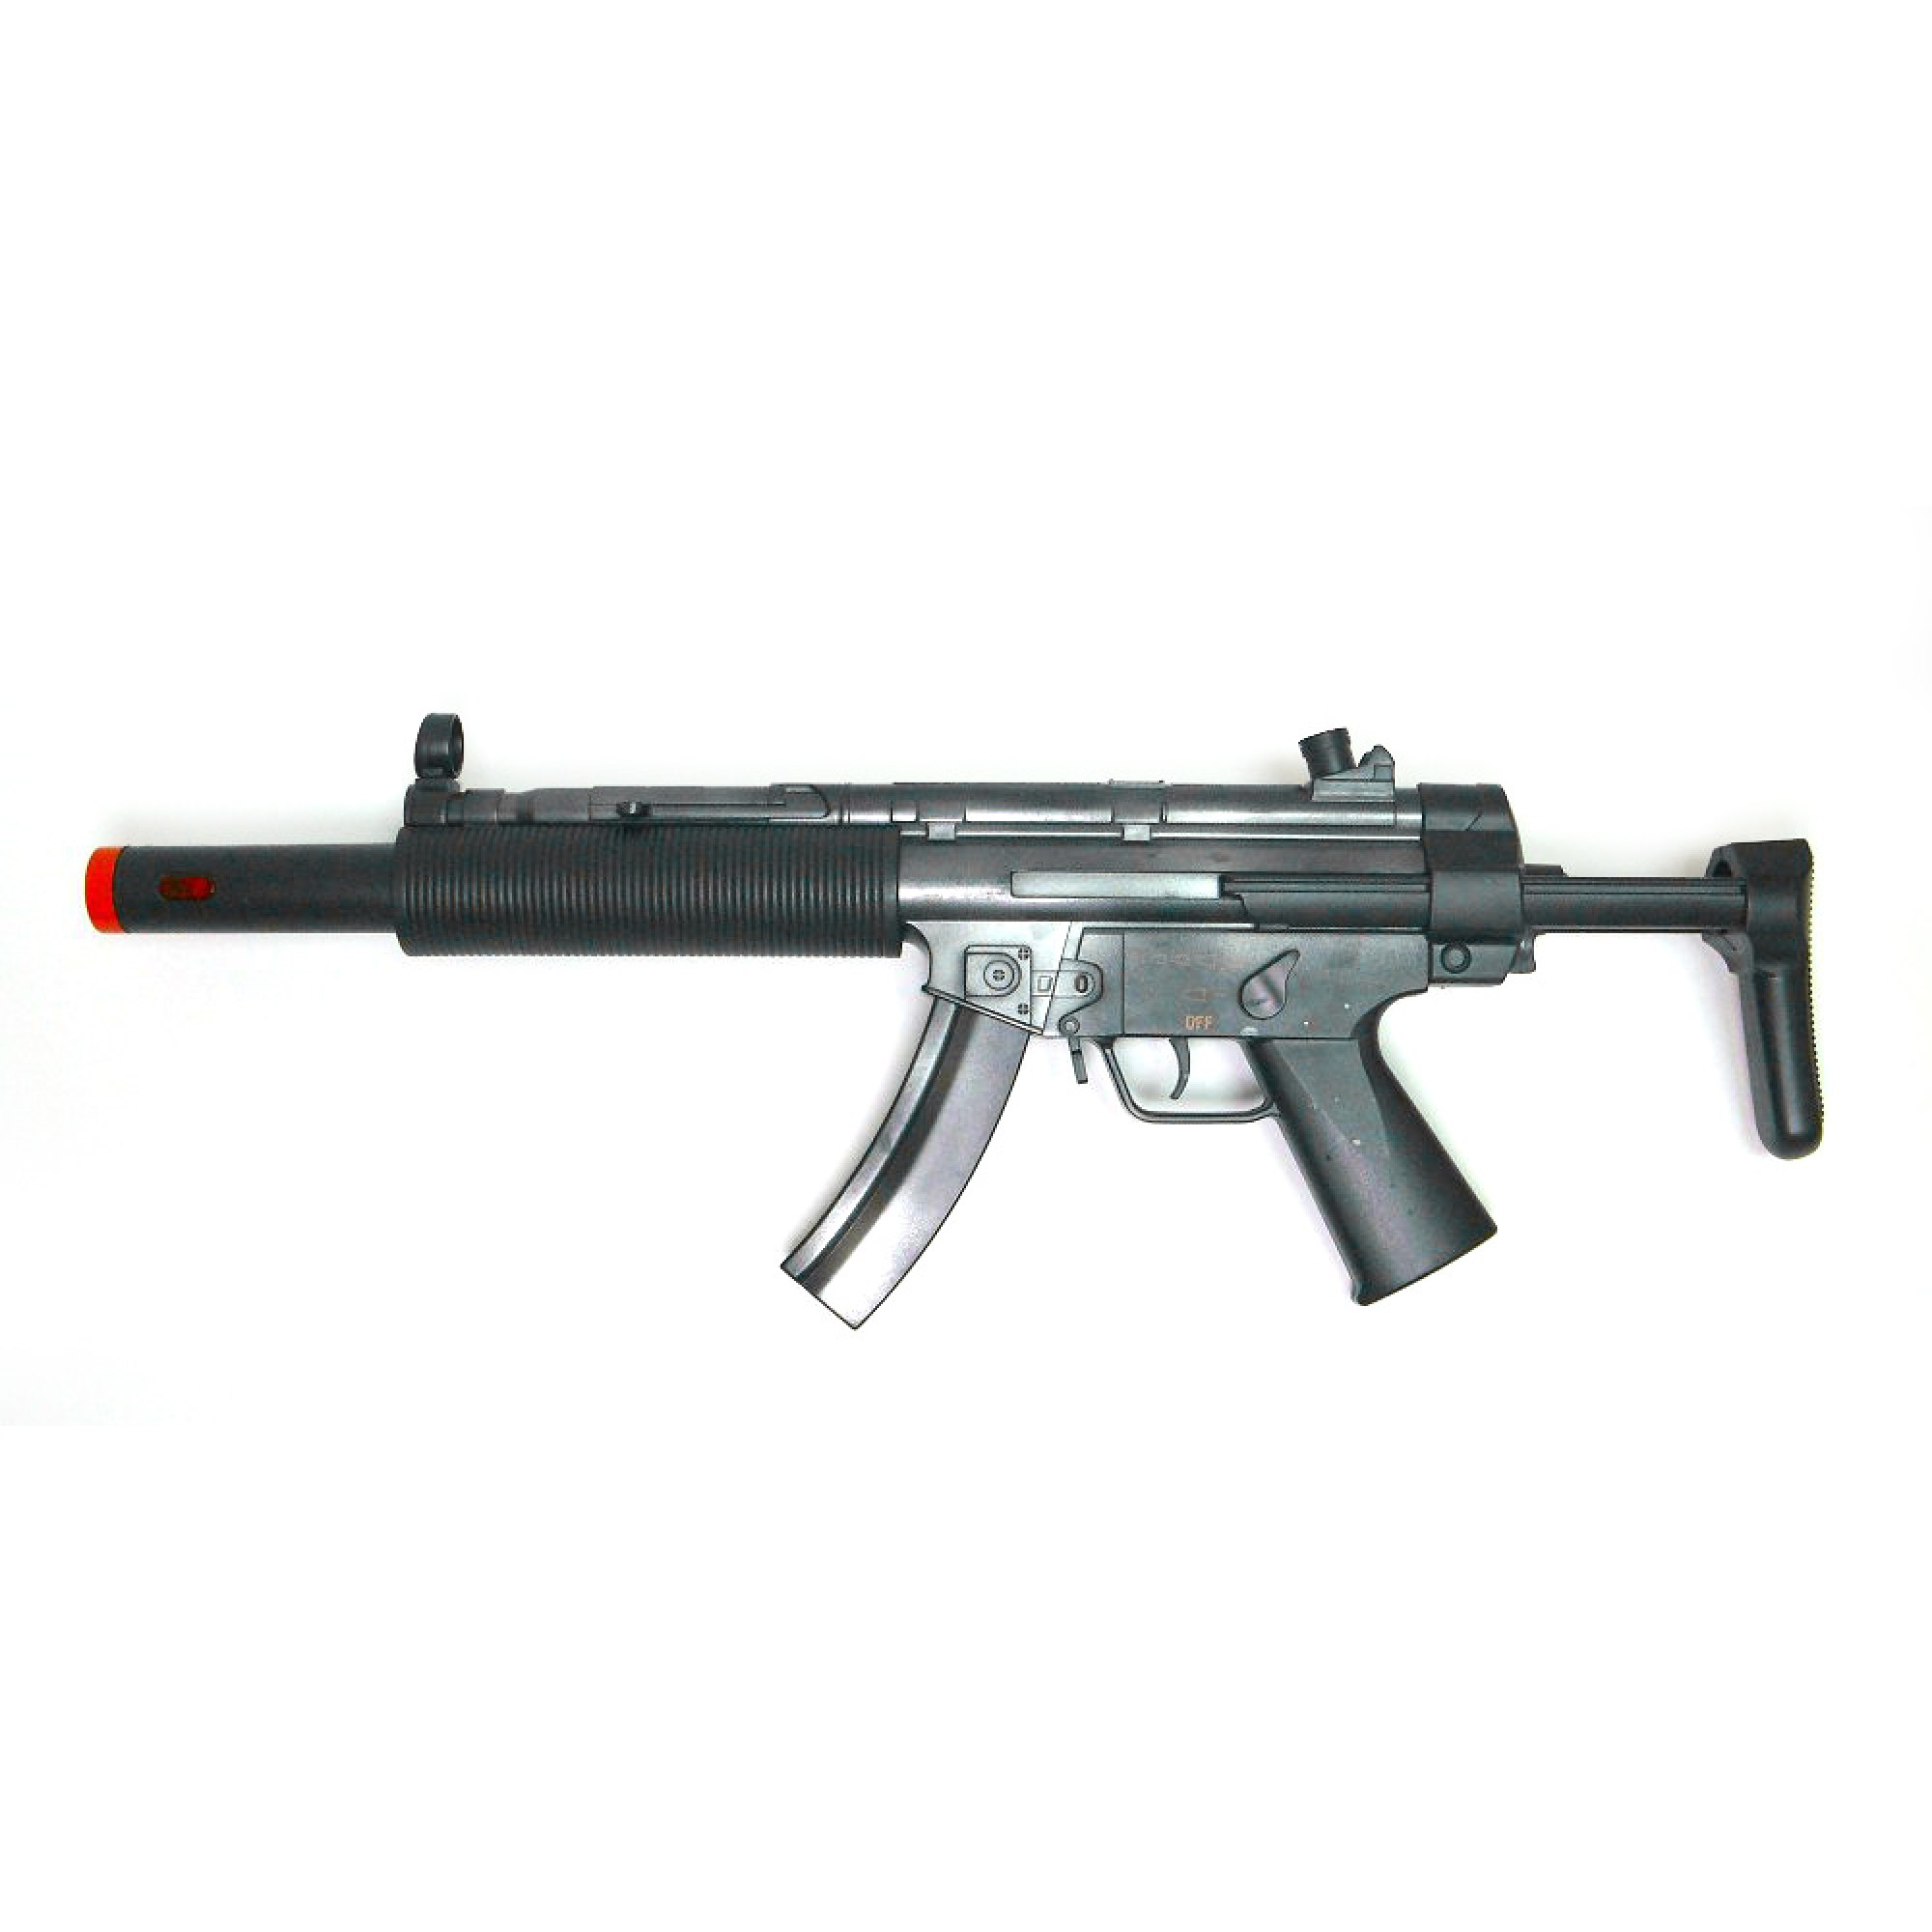 MP5 SD6 W/Light, Sound & Vibration